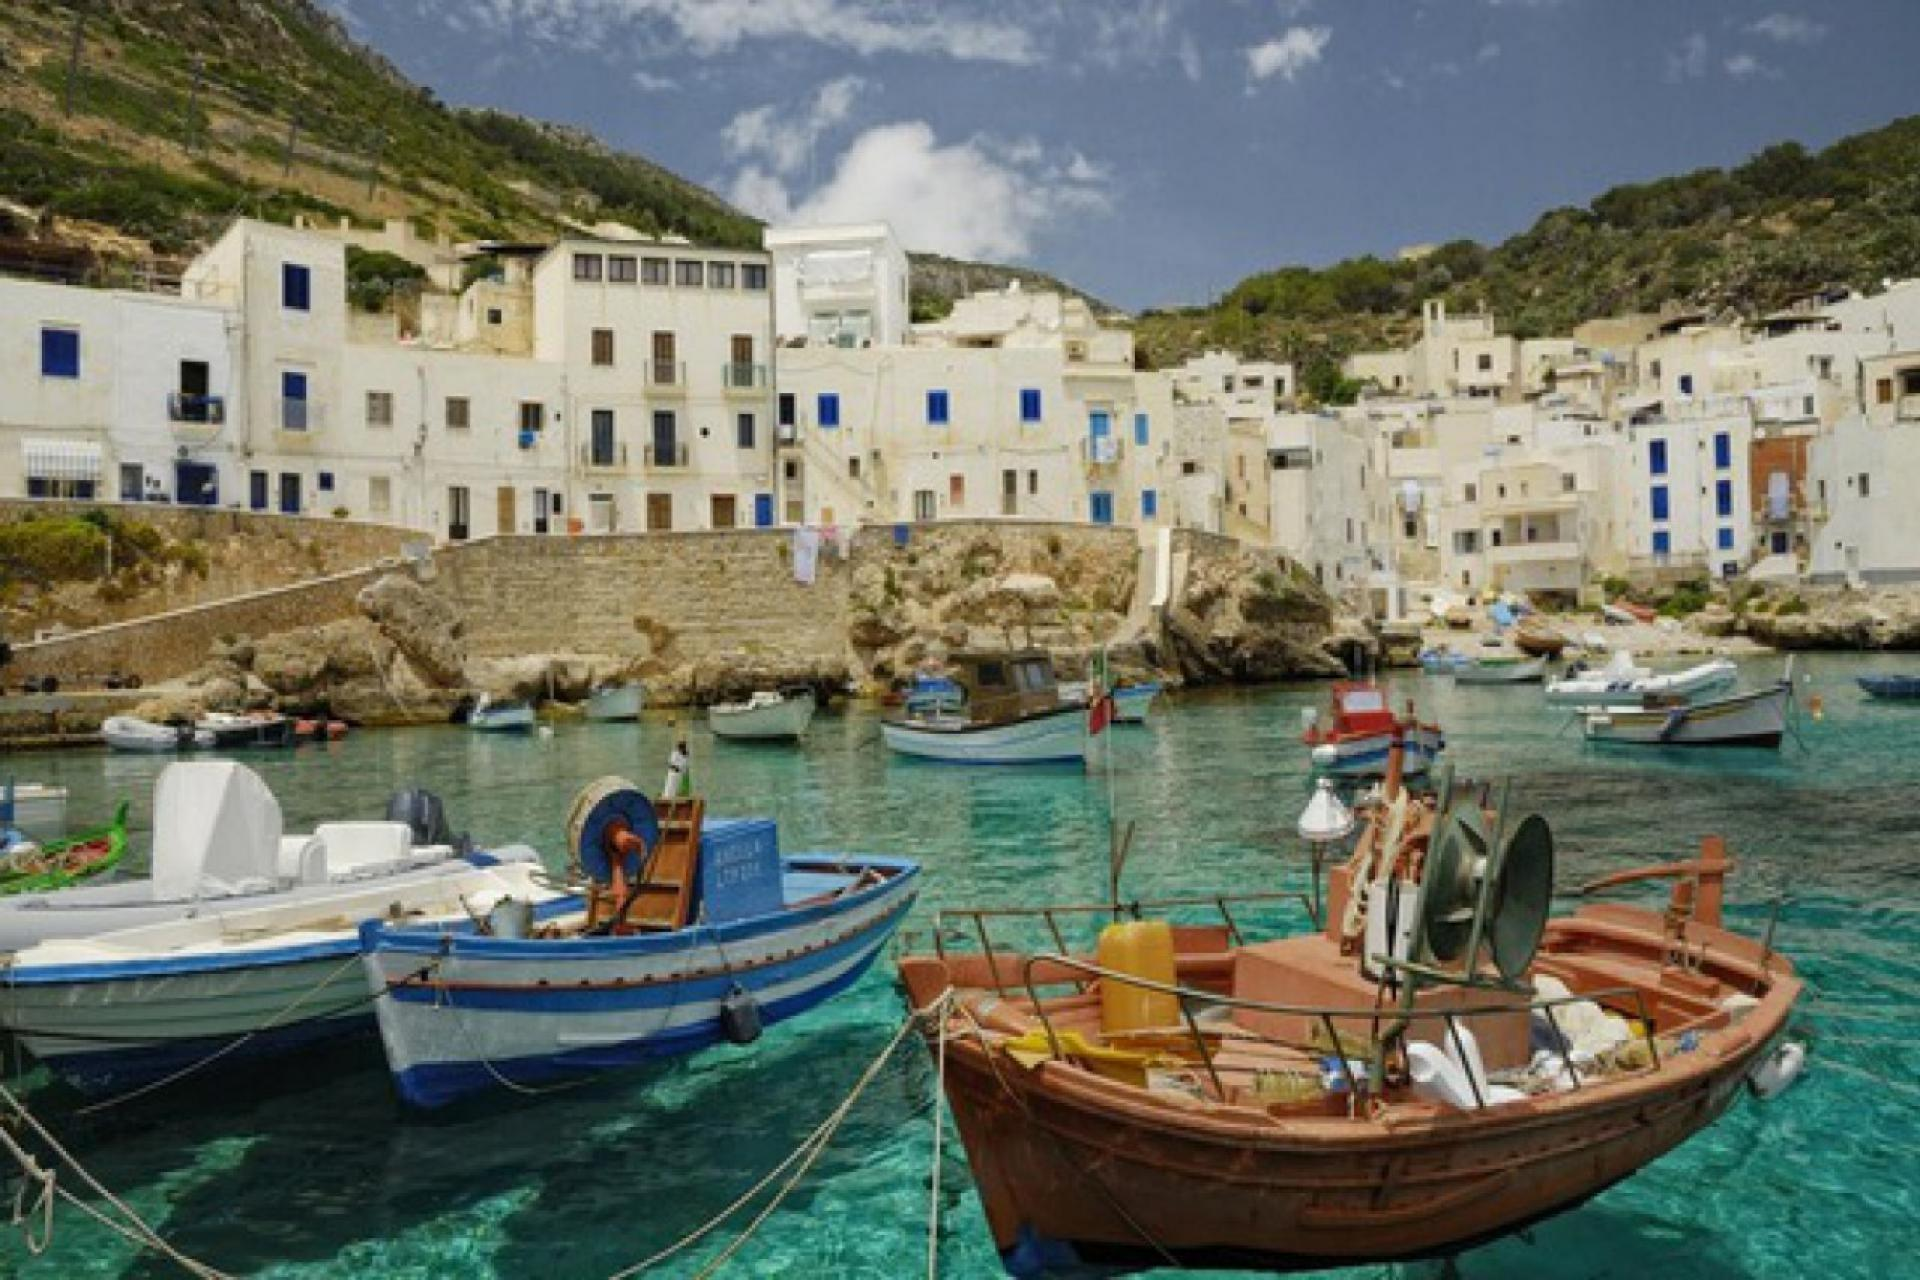 Sicily began to actively develop the tourism sector